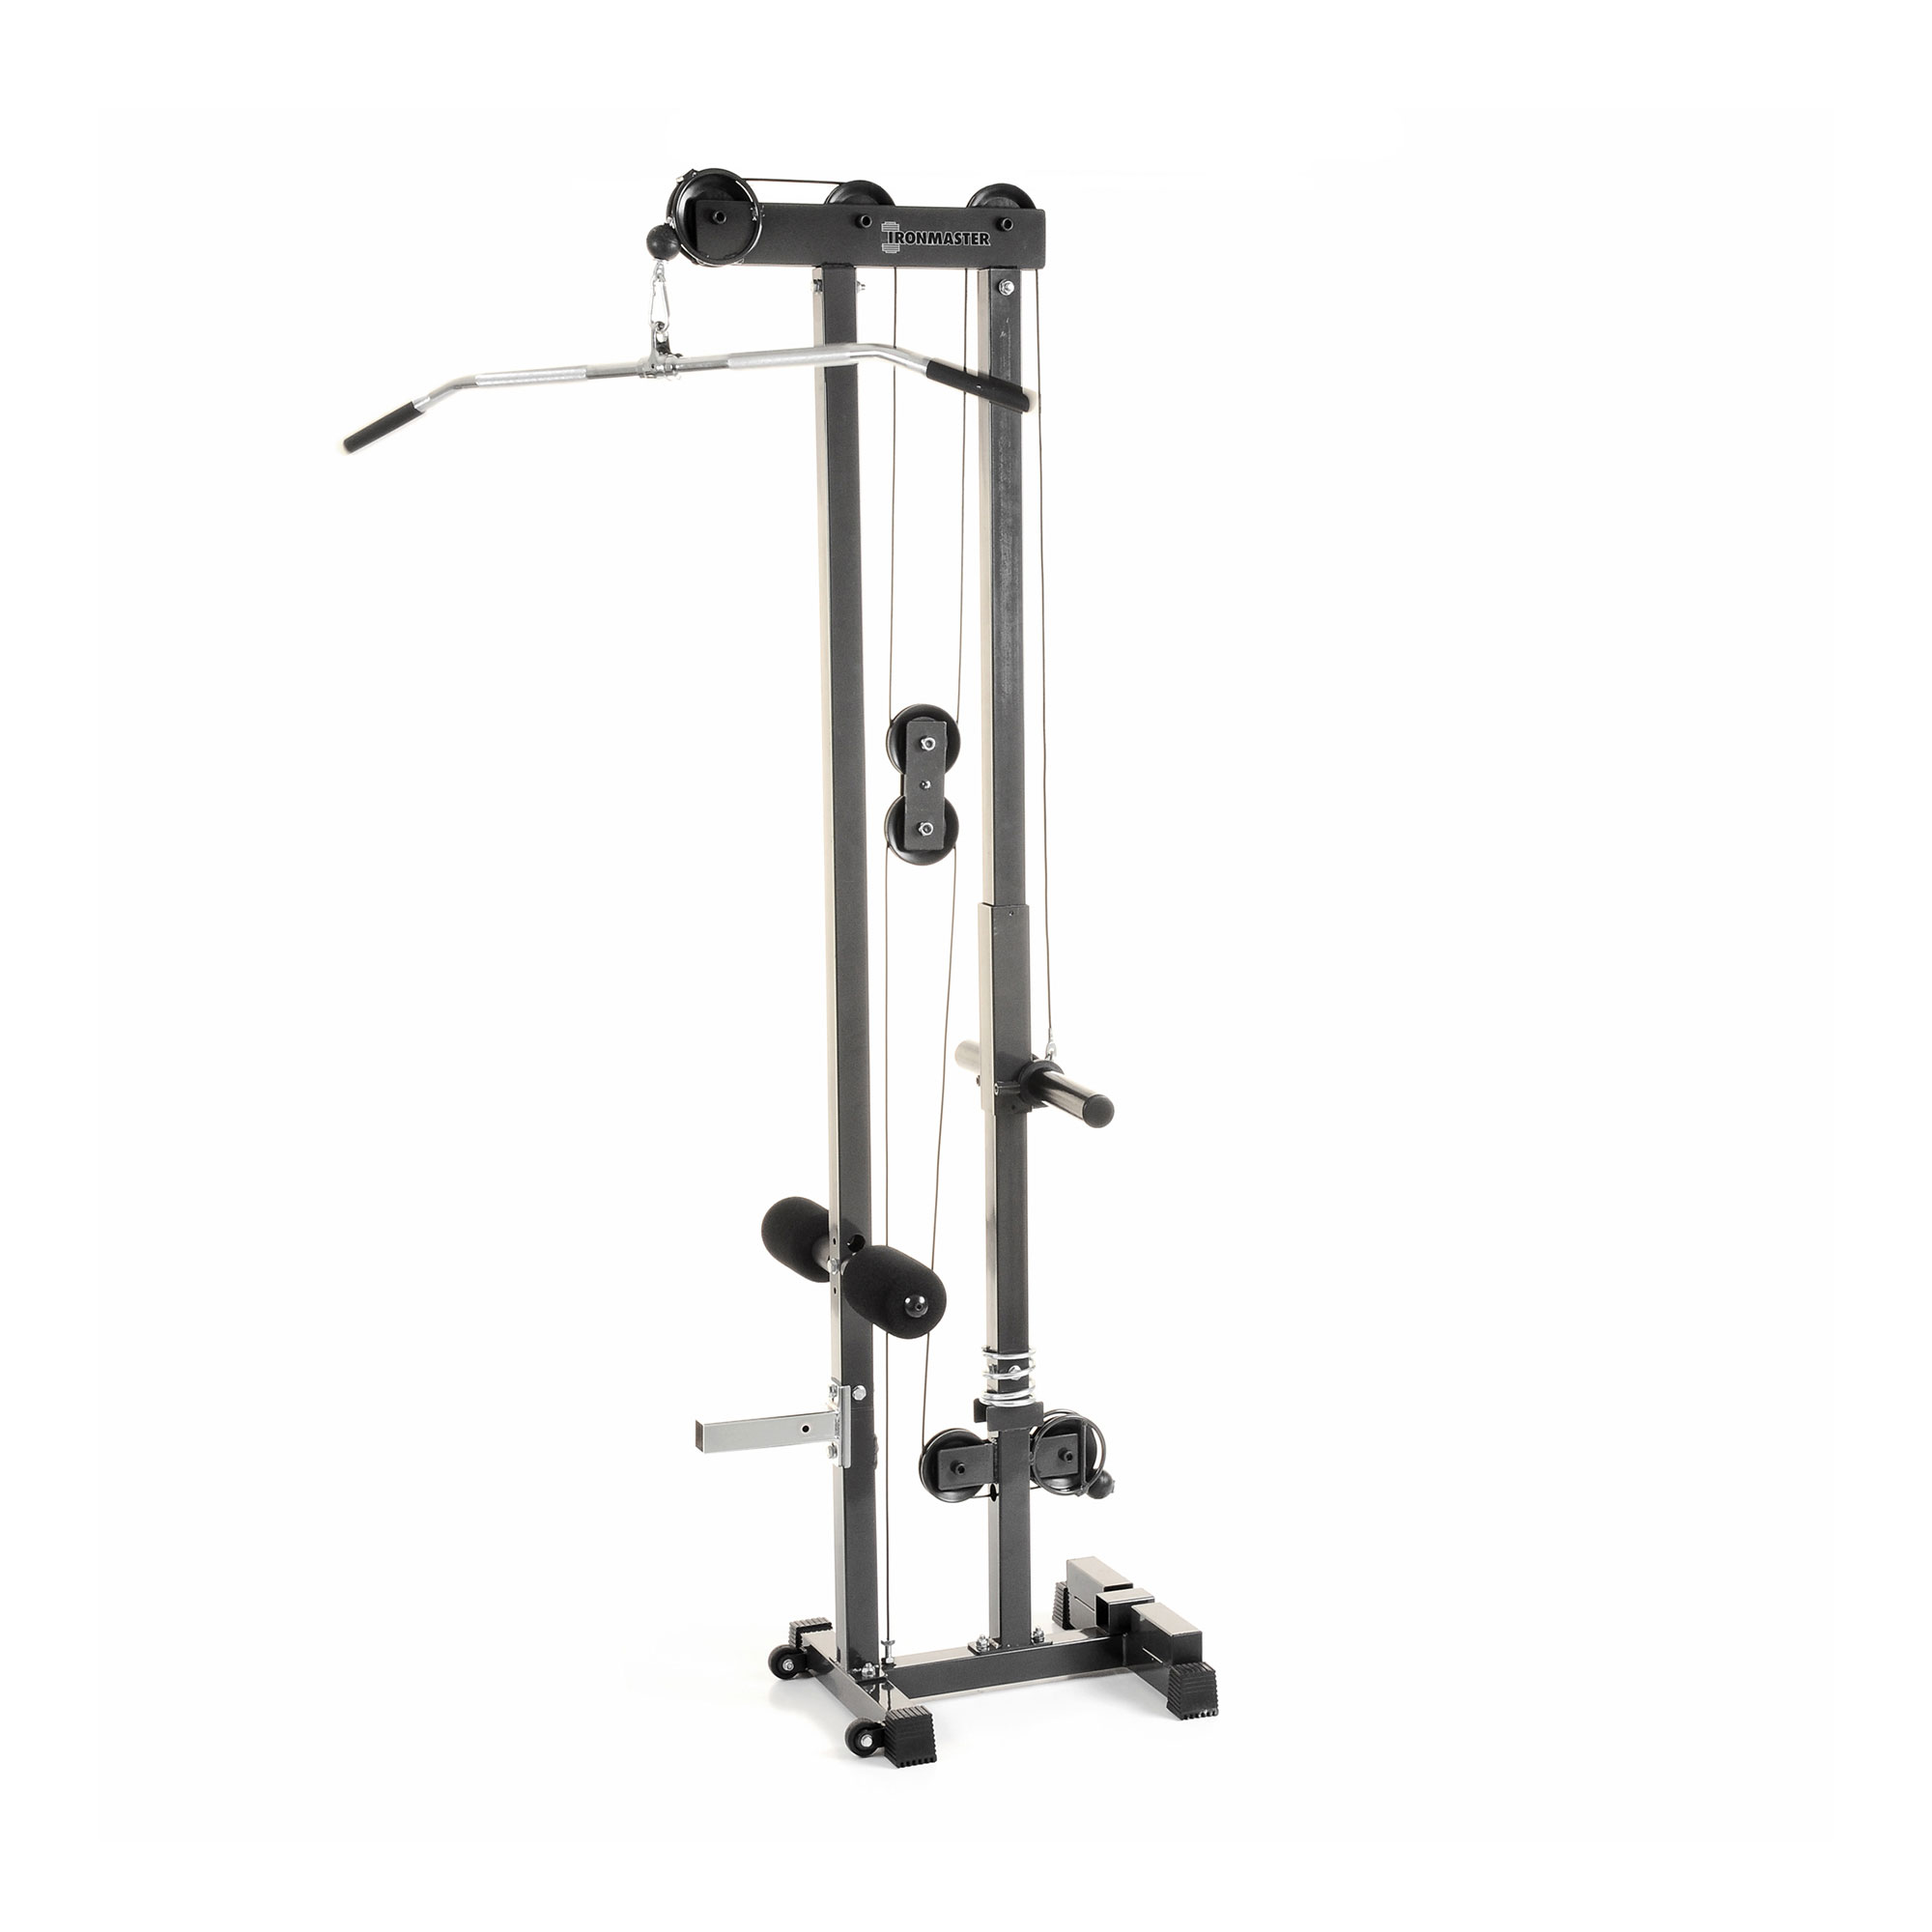 IronmasterUK super bench cable tower attachment